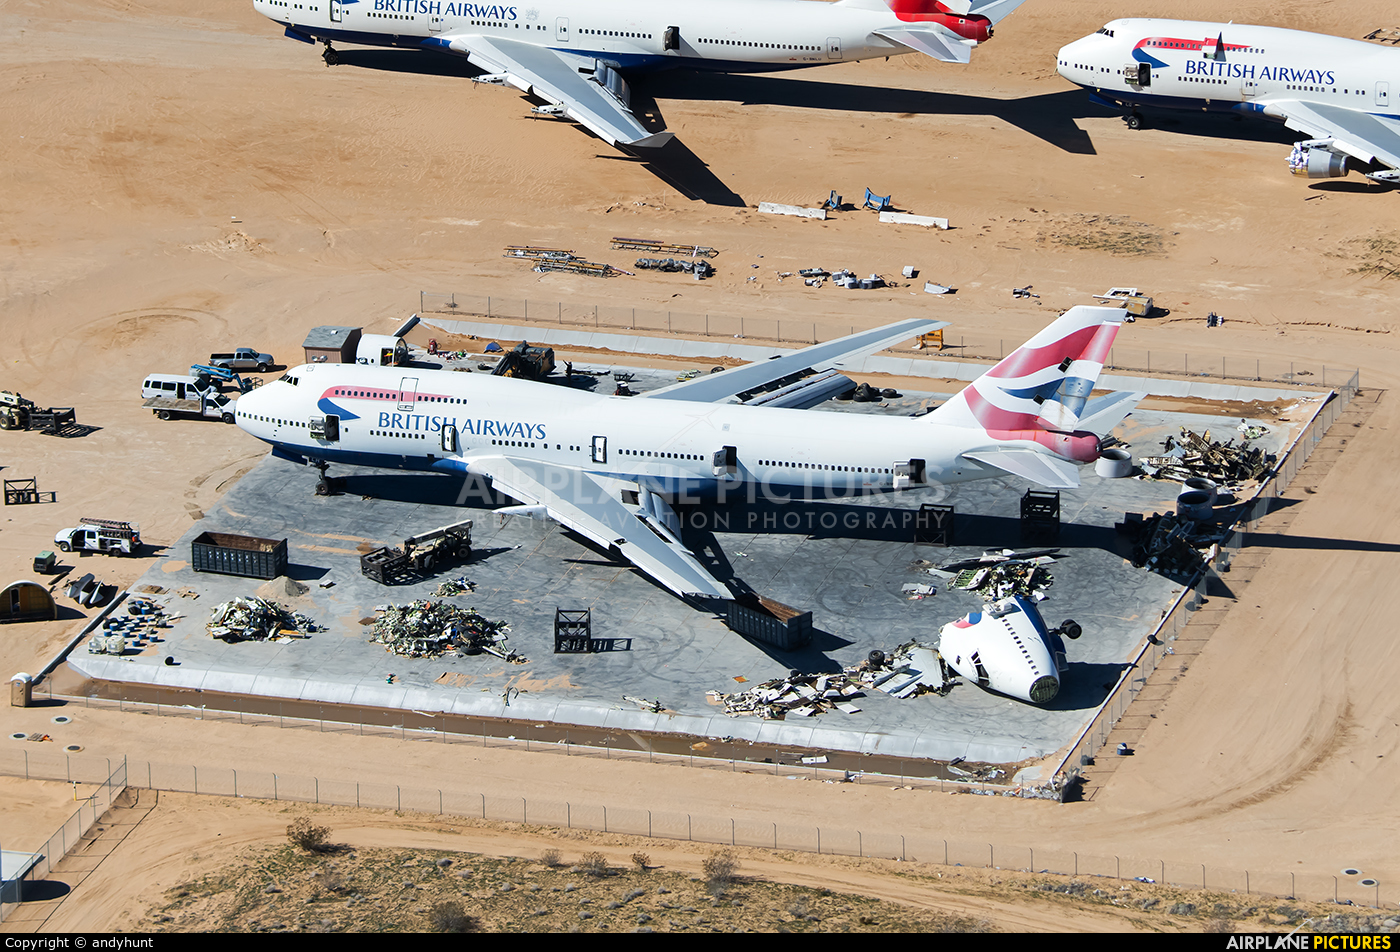 British Airways G-BNLH aircraft at Victorville - Southern California Logistics